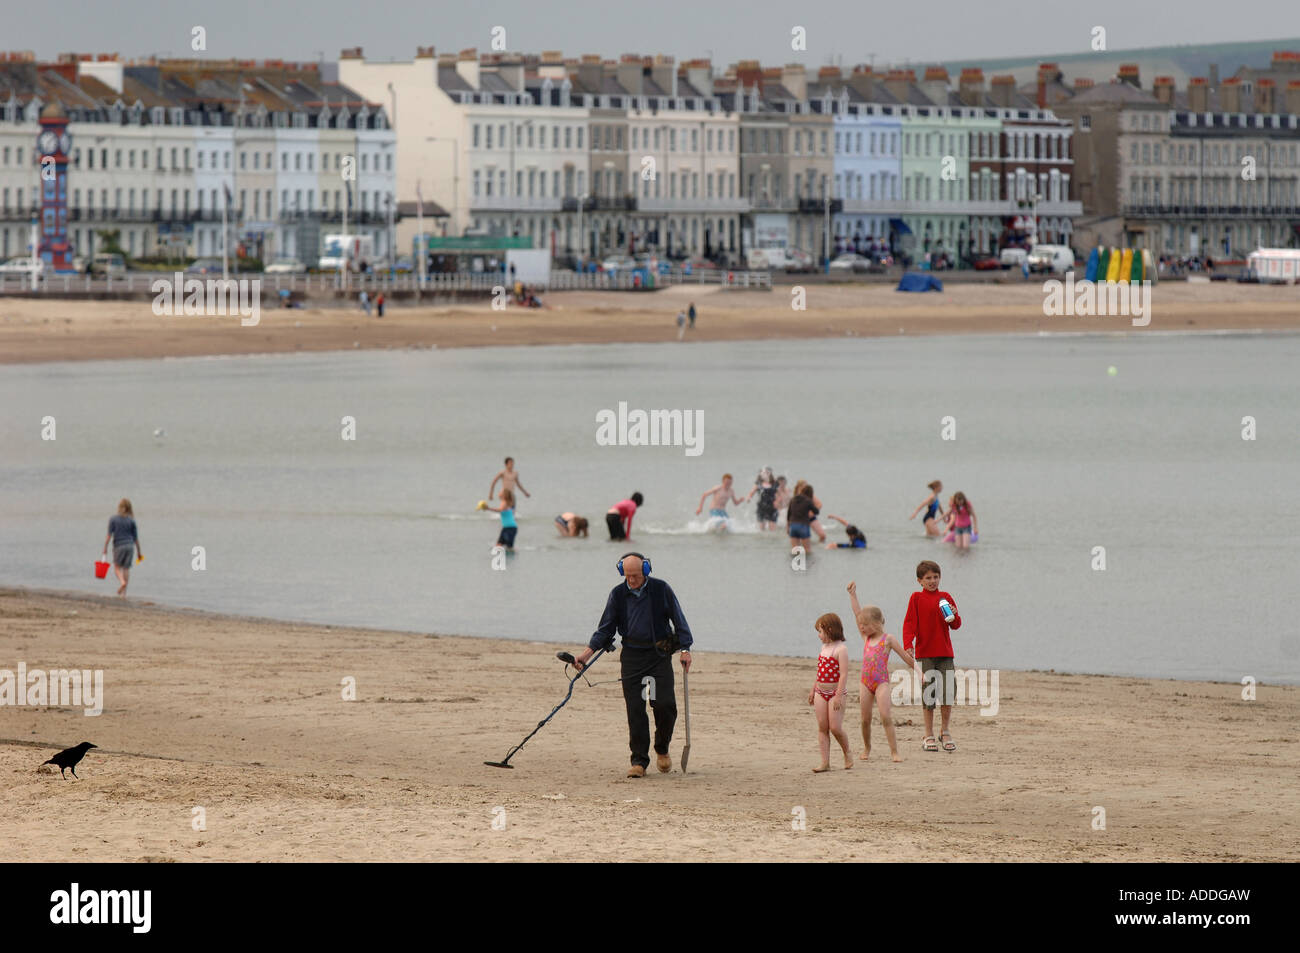 Jew Detector: A Man With A Metal Detector Walking Up And Down The Beach